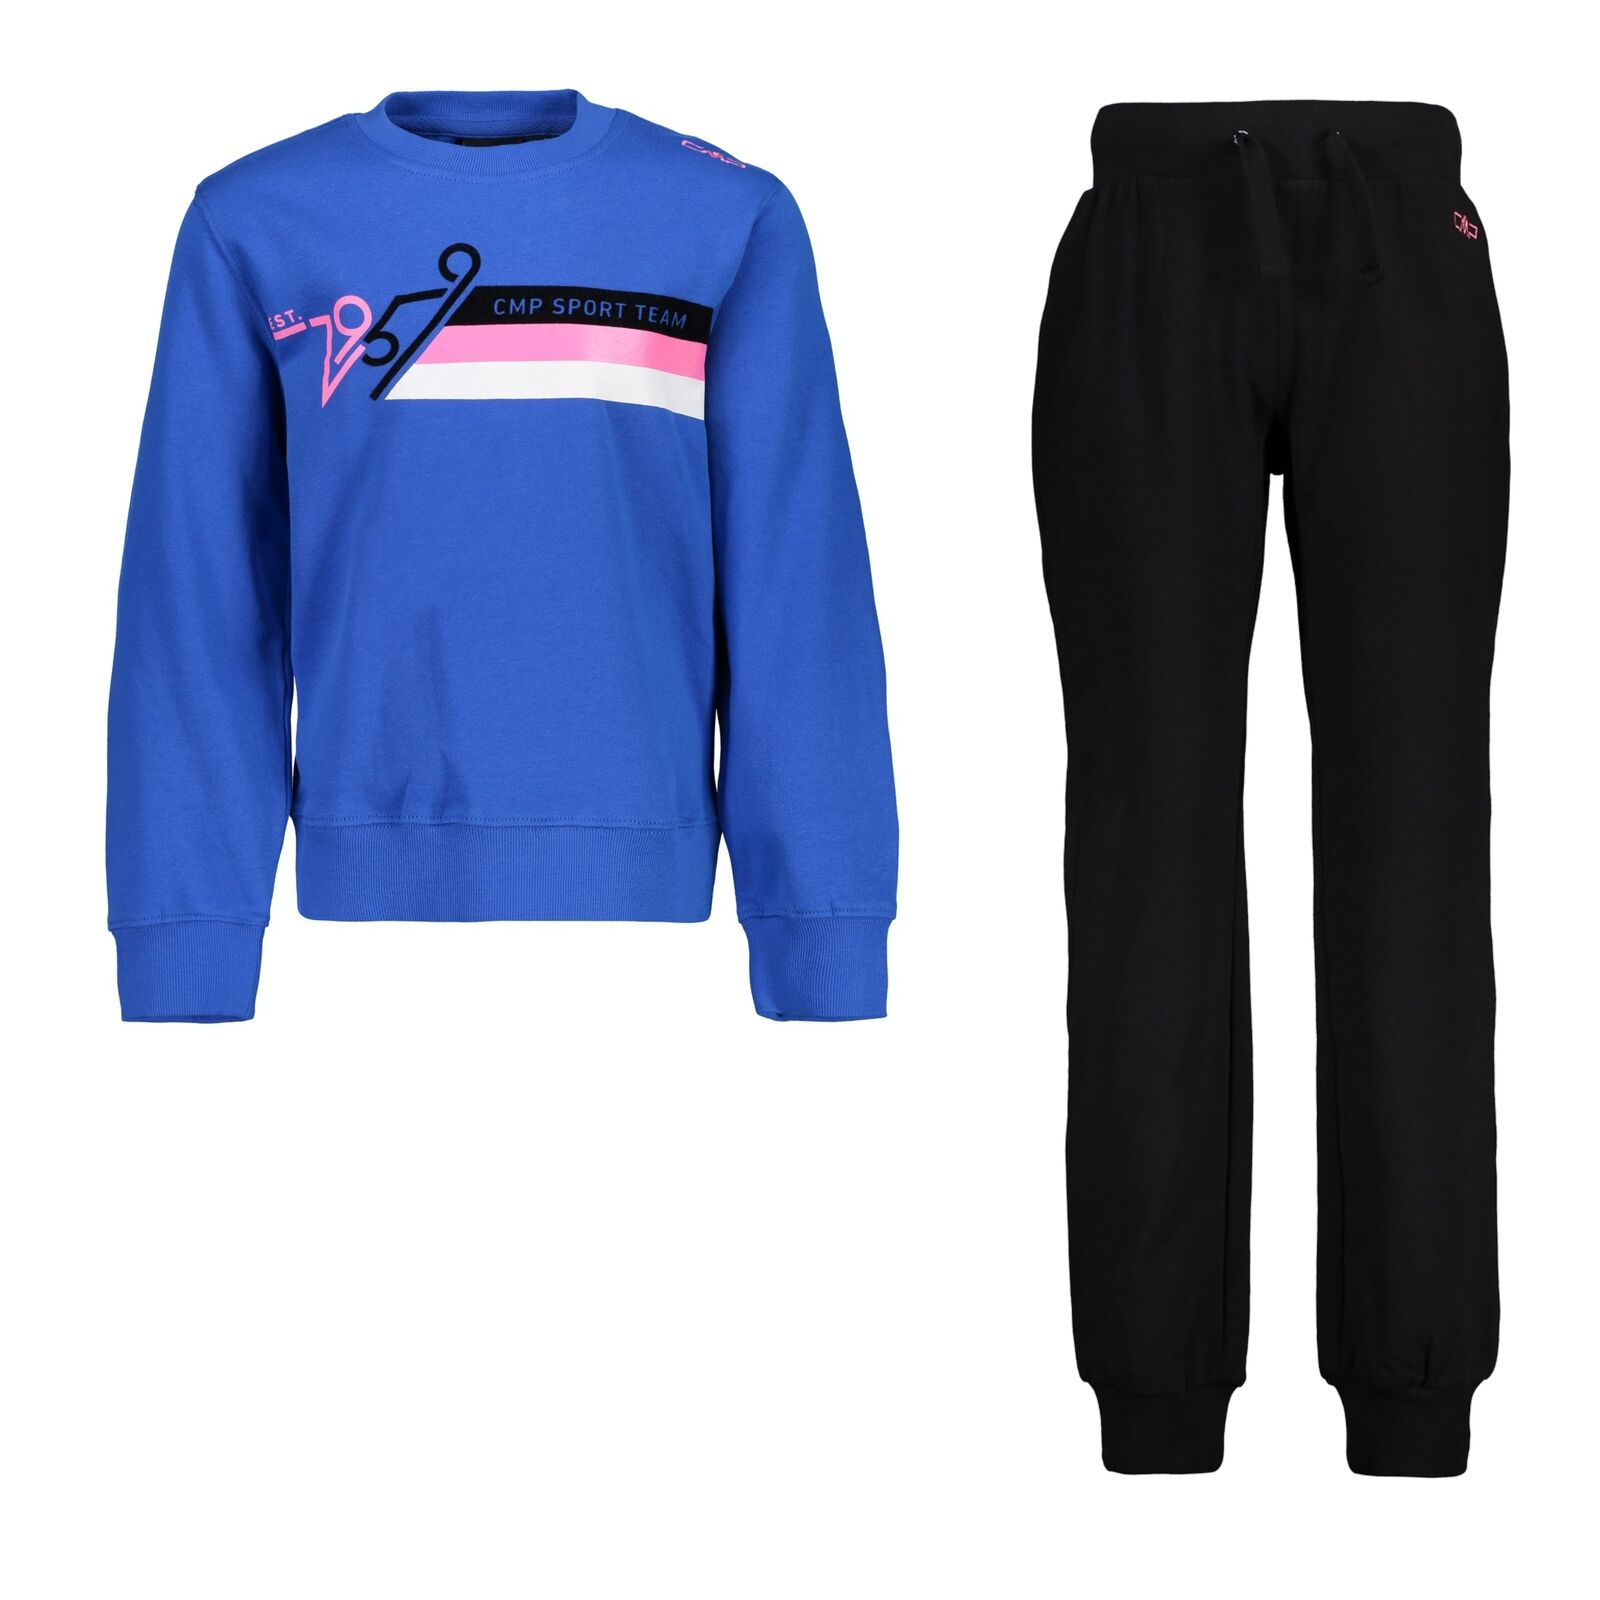 CMP Trainingsanzug  Sweater Jogginganzug bluee Rundhals sportlich  sale with high discount